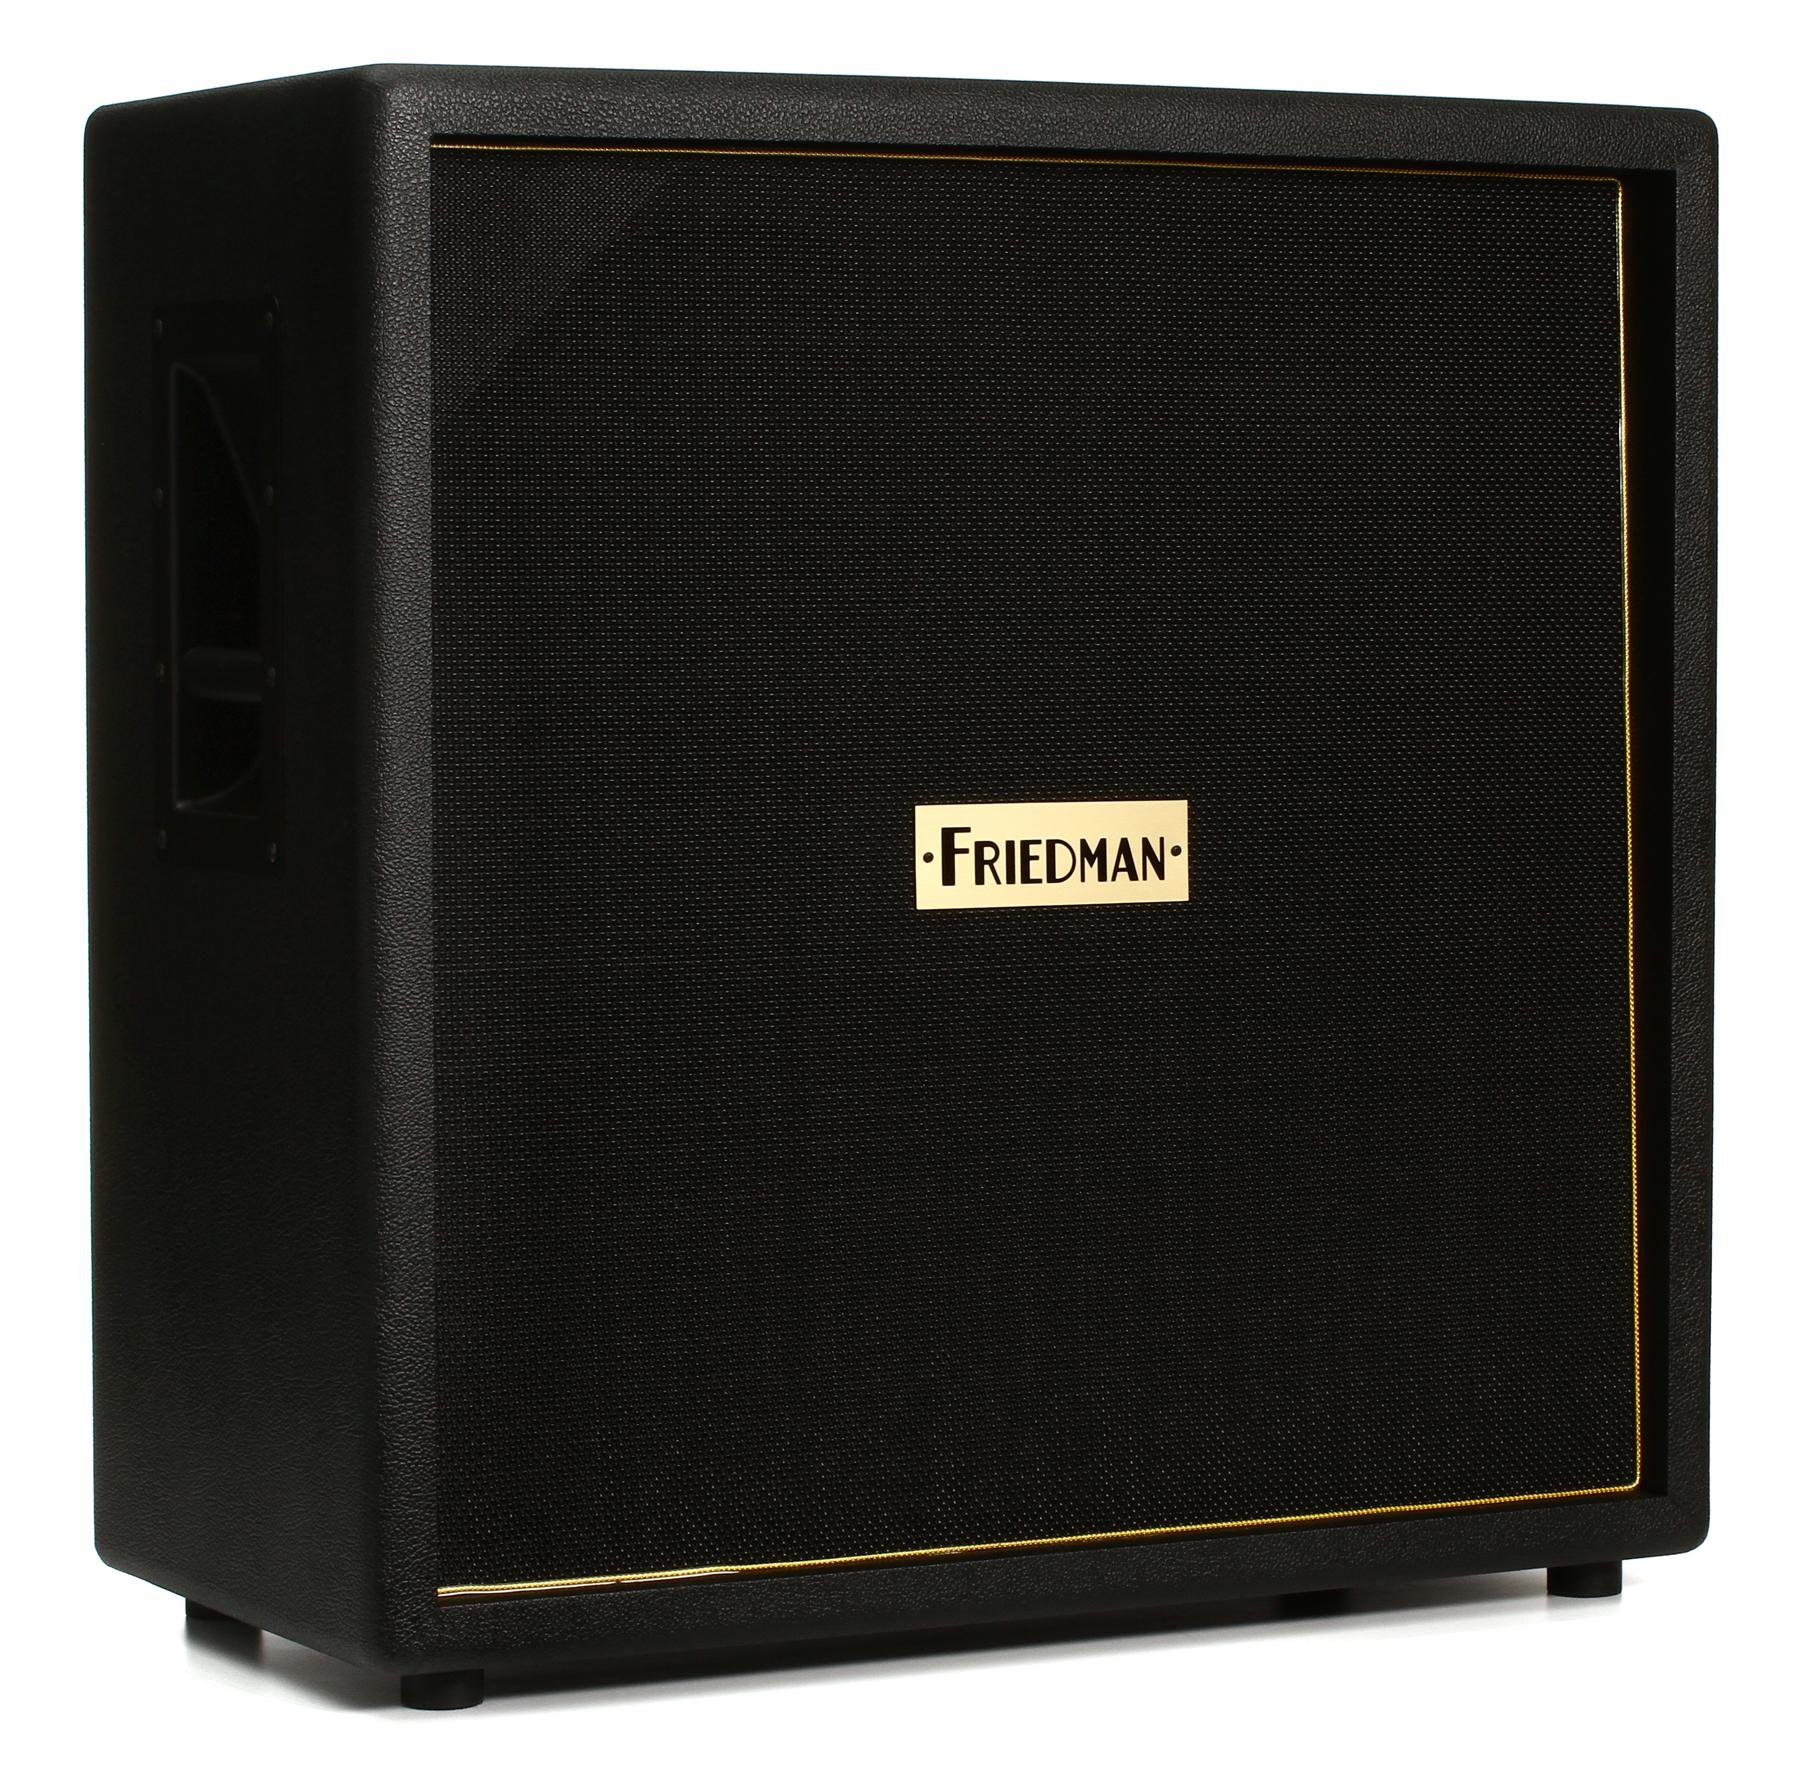 "Friedman 212 120 watt 2x12"" Extension Cabinet"